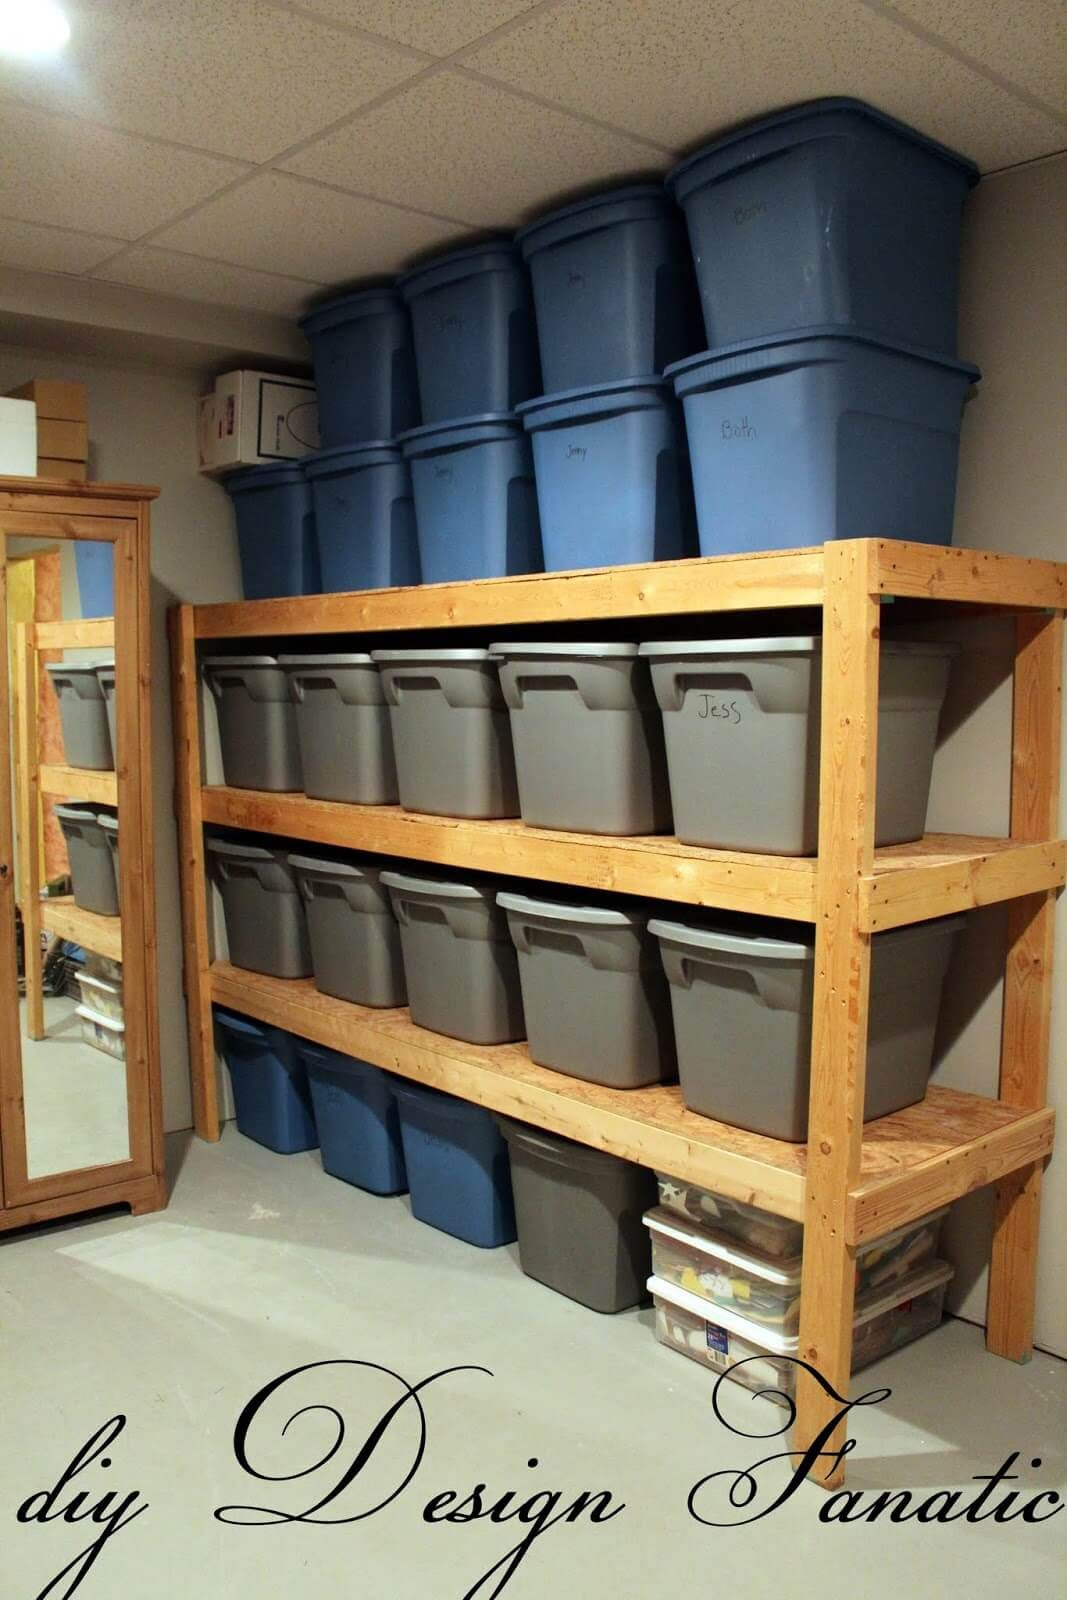 We Mounted Rubbermaid Fasttrack In Cement Walls Works Like A